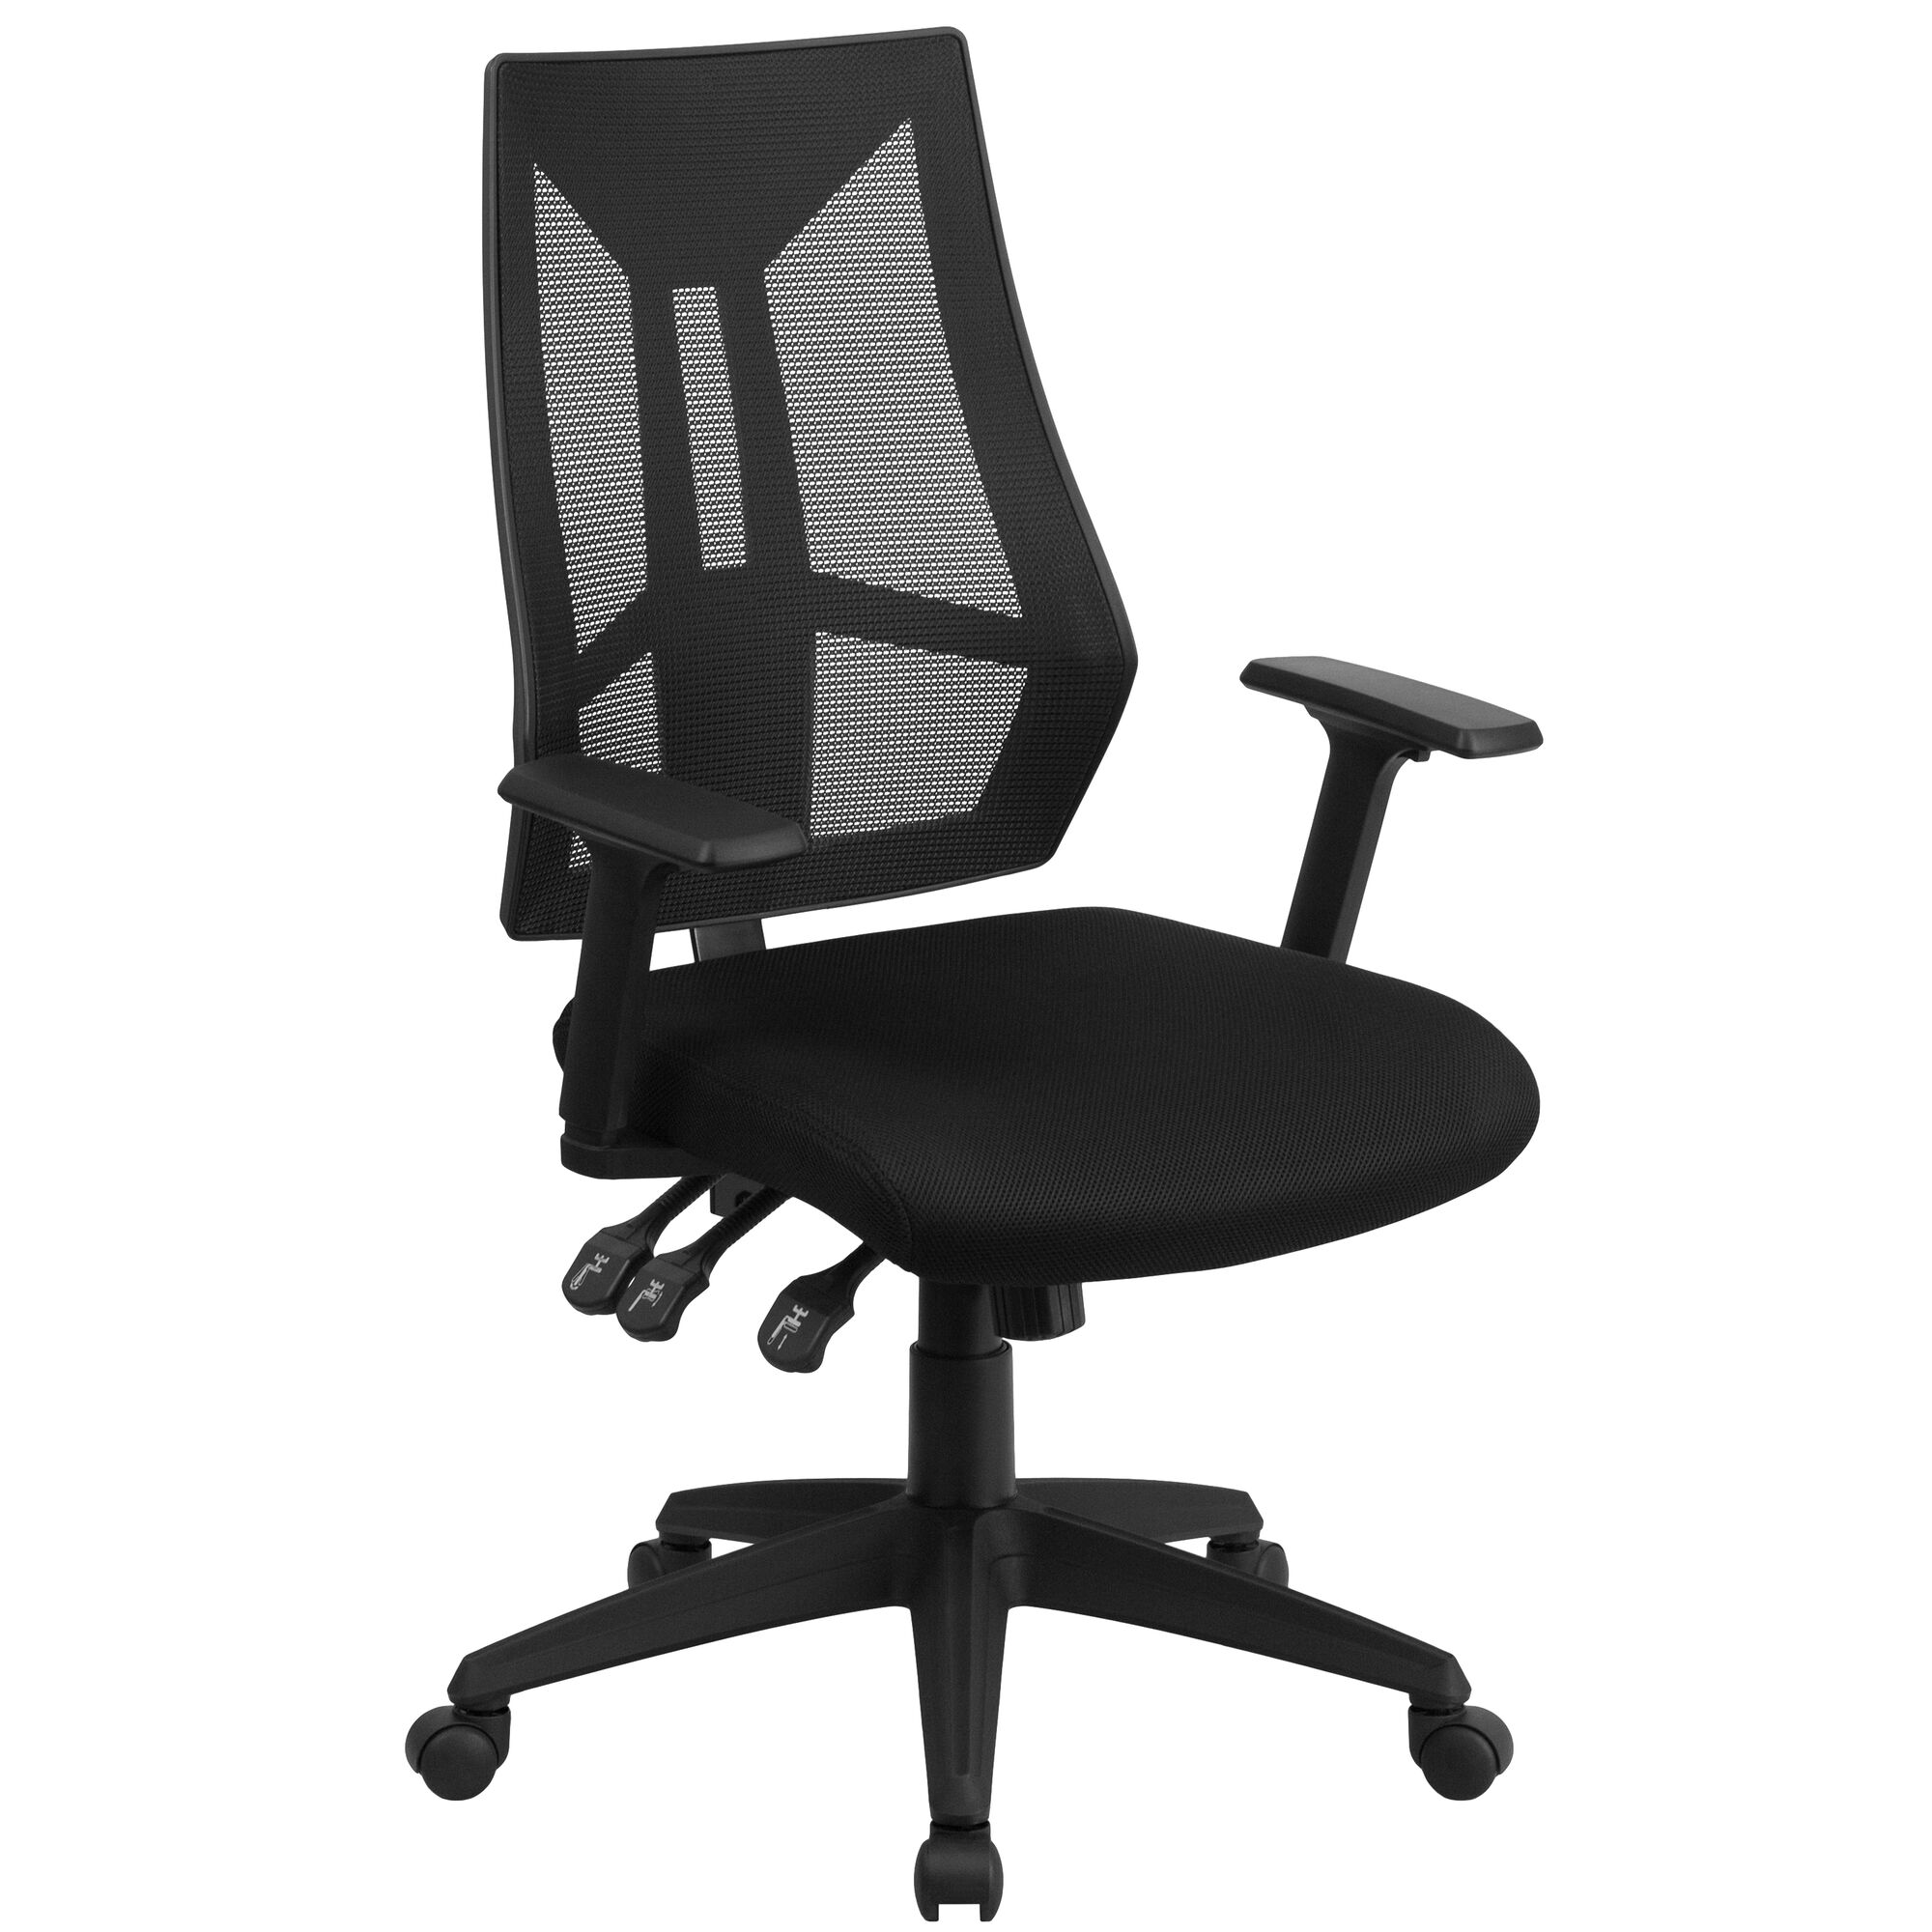 Surprising High Back Black Mesh Multifunction Swivel Ergonomic Task Office Chair With Adjustable Arms Home Interior And Landscaping Transignezvosmurscom